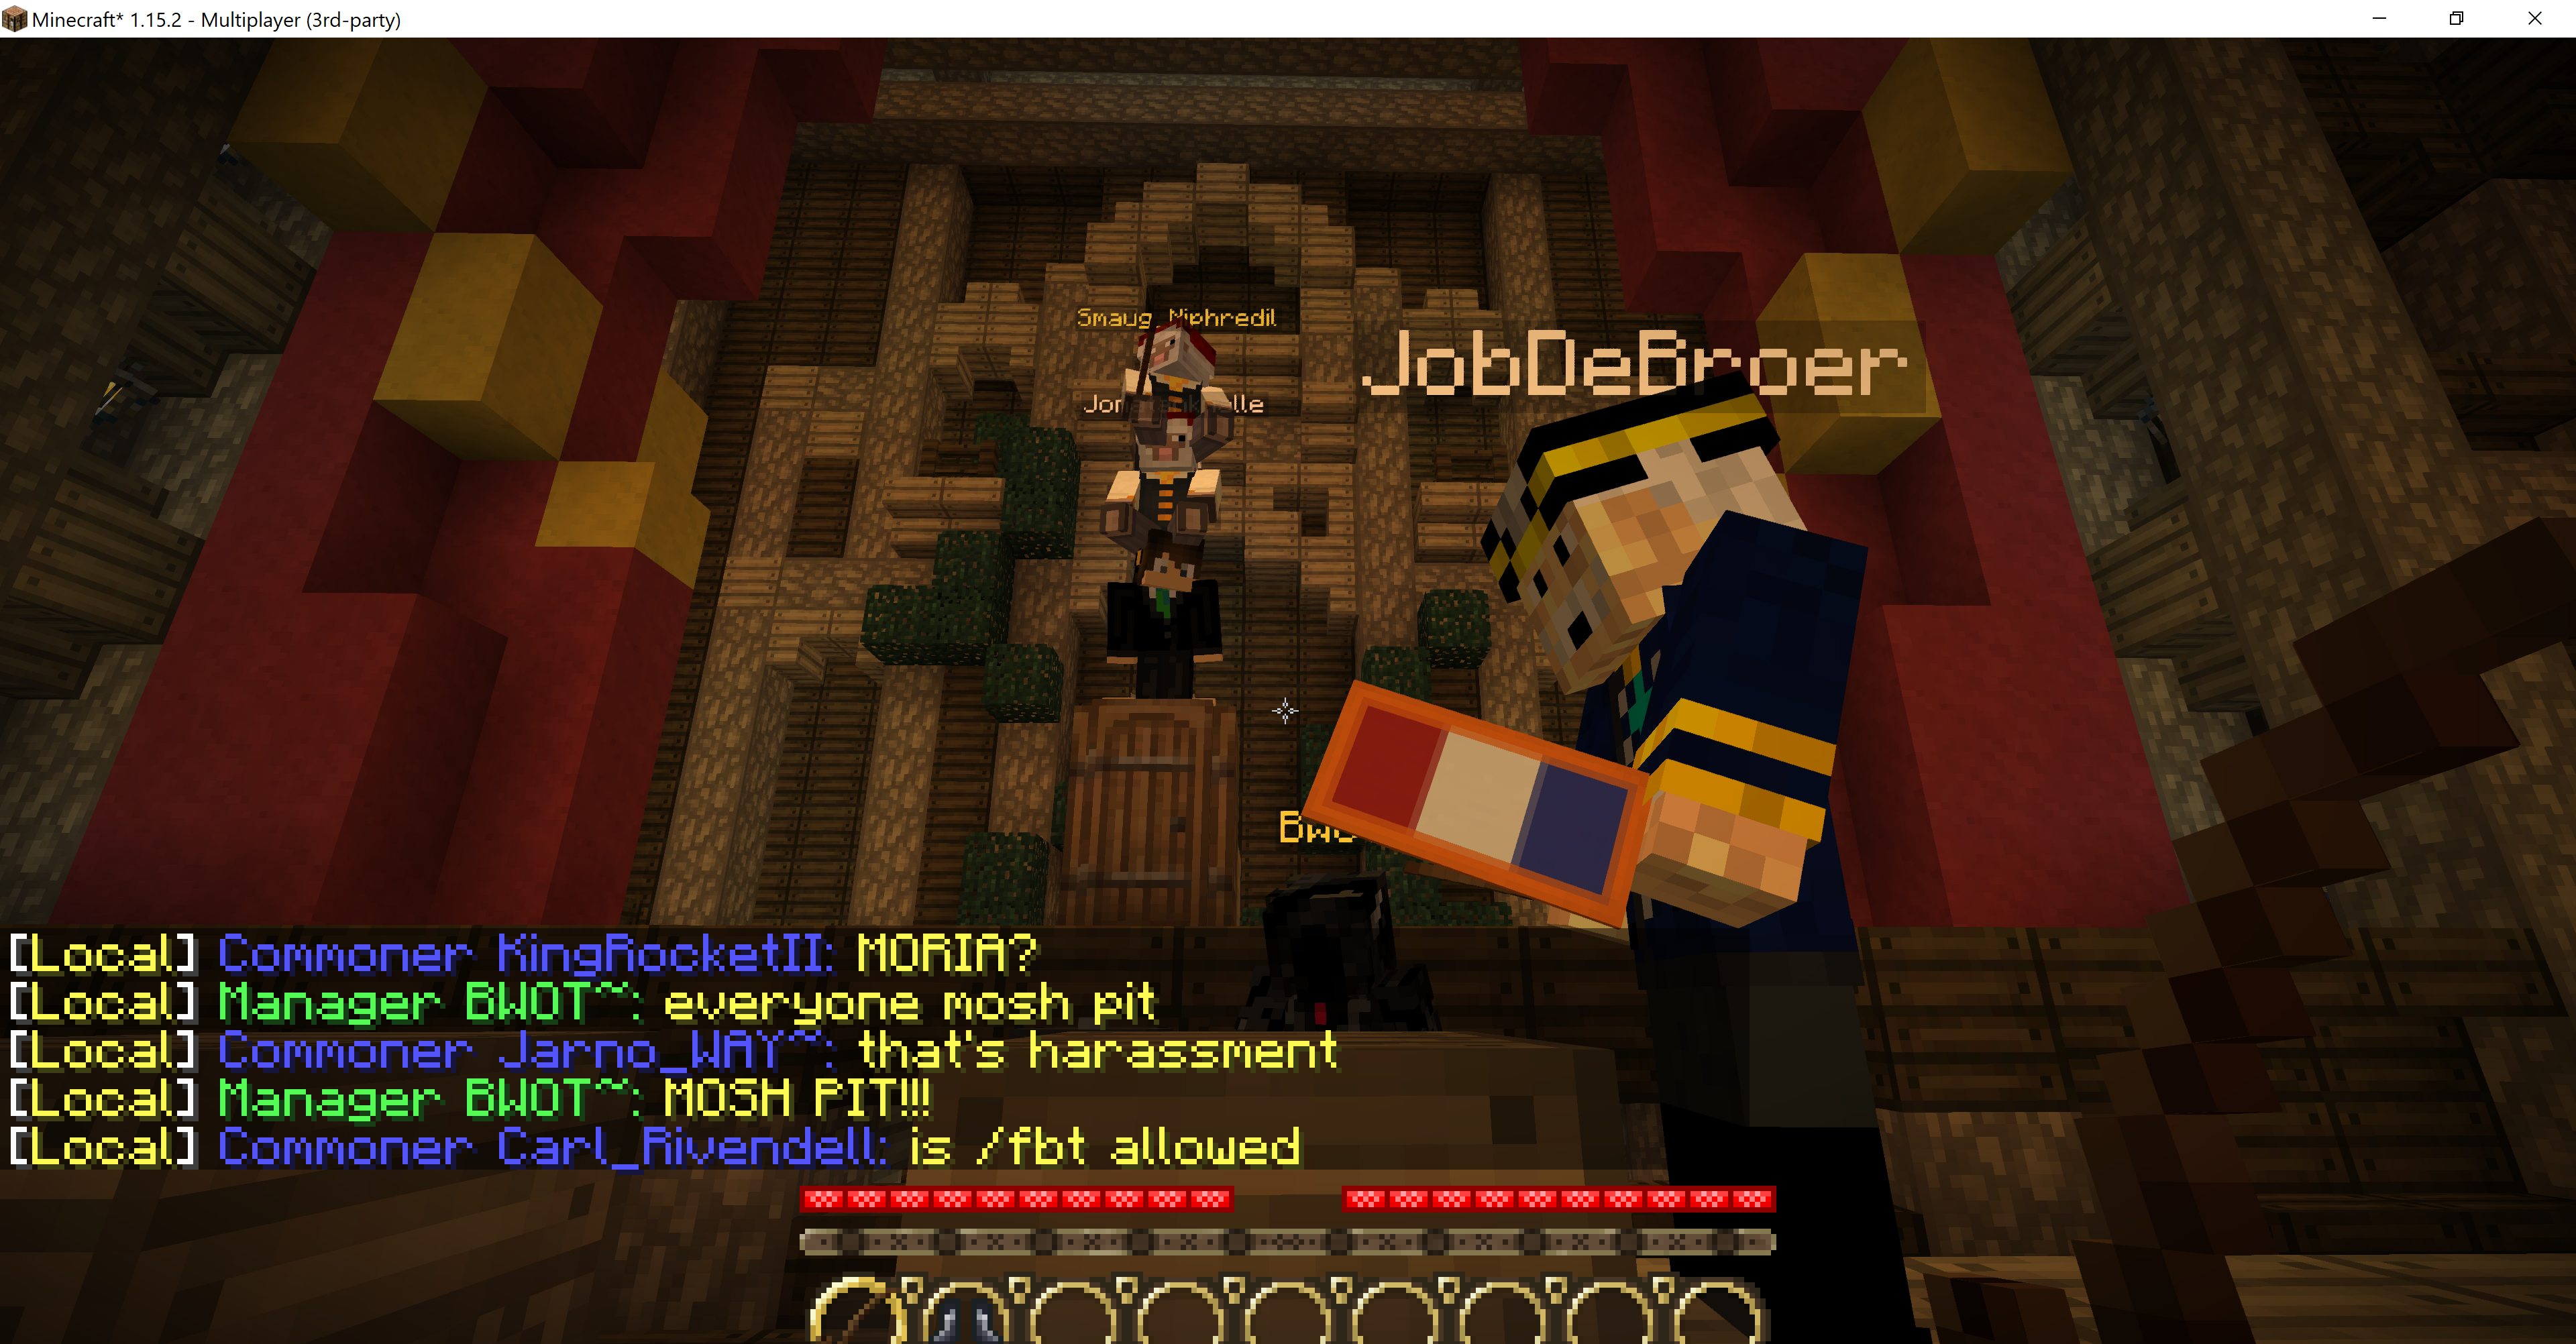 Minecraft_ 1.15.2 - Multiplayer (3rd-party) 7_31_2020 3_12_25 PM.png